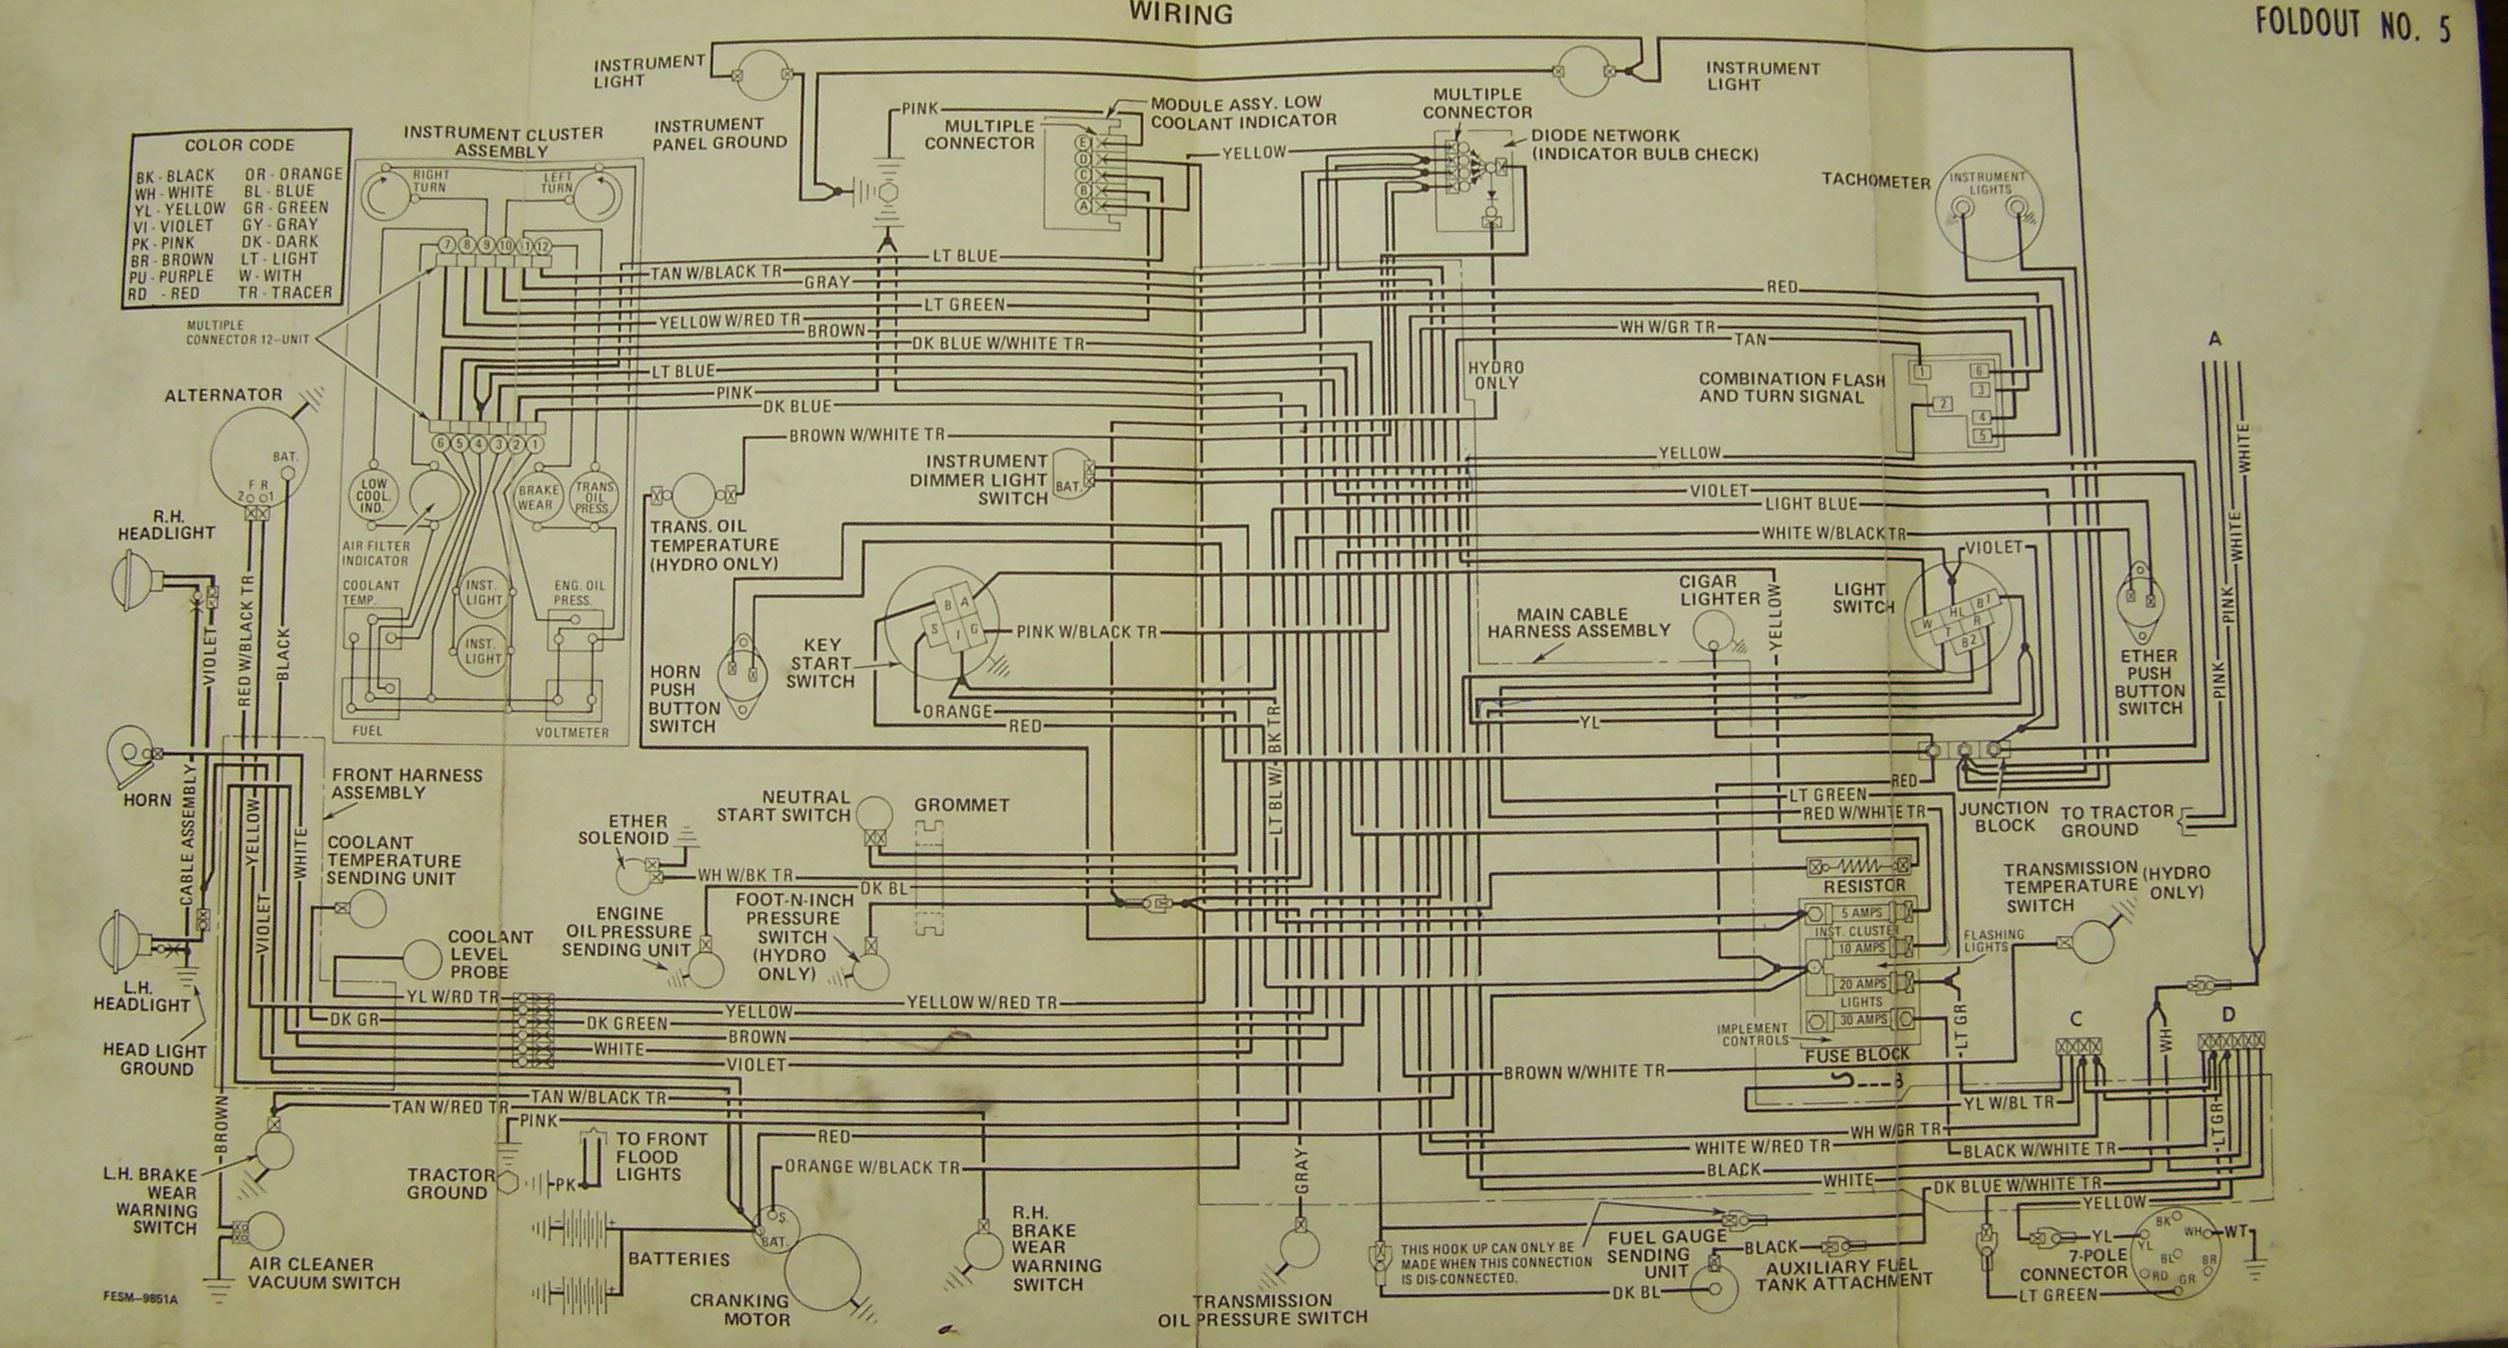 86series5 ih 574 wiring diagram case 430 tractor wiring diagram \u2022 wiring International 4300 Wiring Diagram Schematics at alyssarenee.co